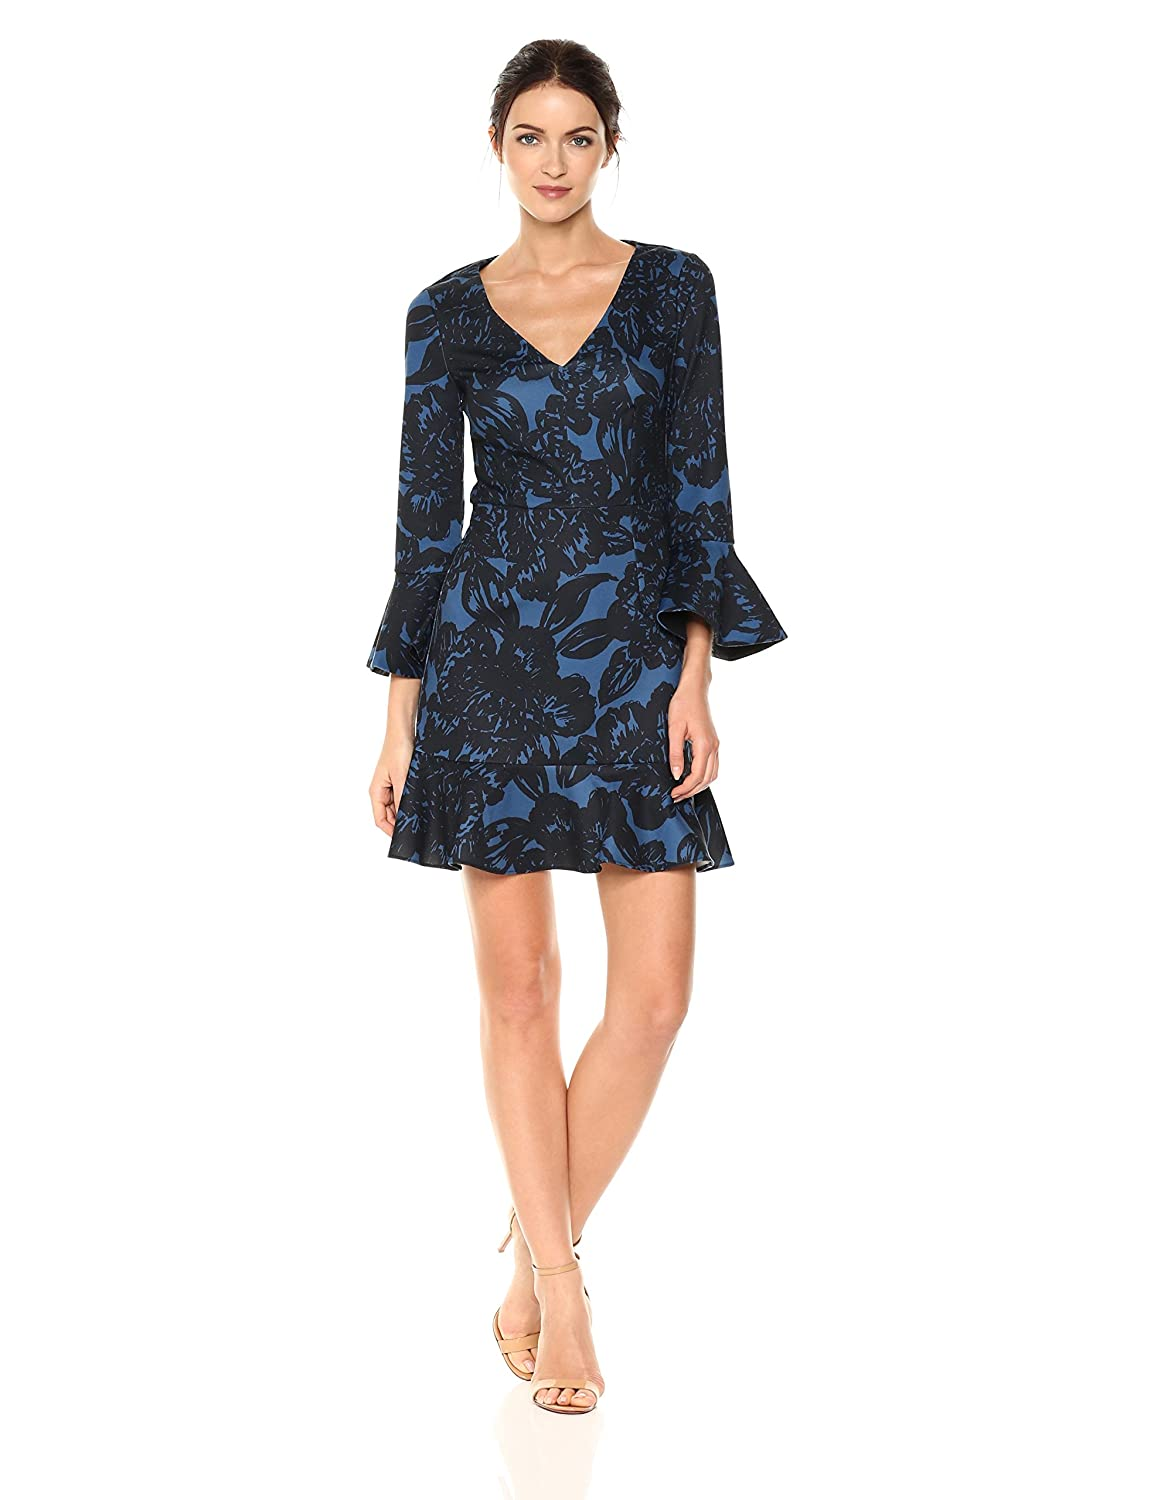 Midnight Trina Turk Womens Clearwater Dress Dress